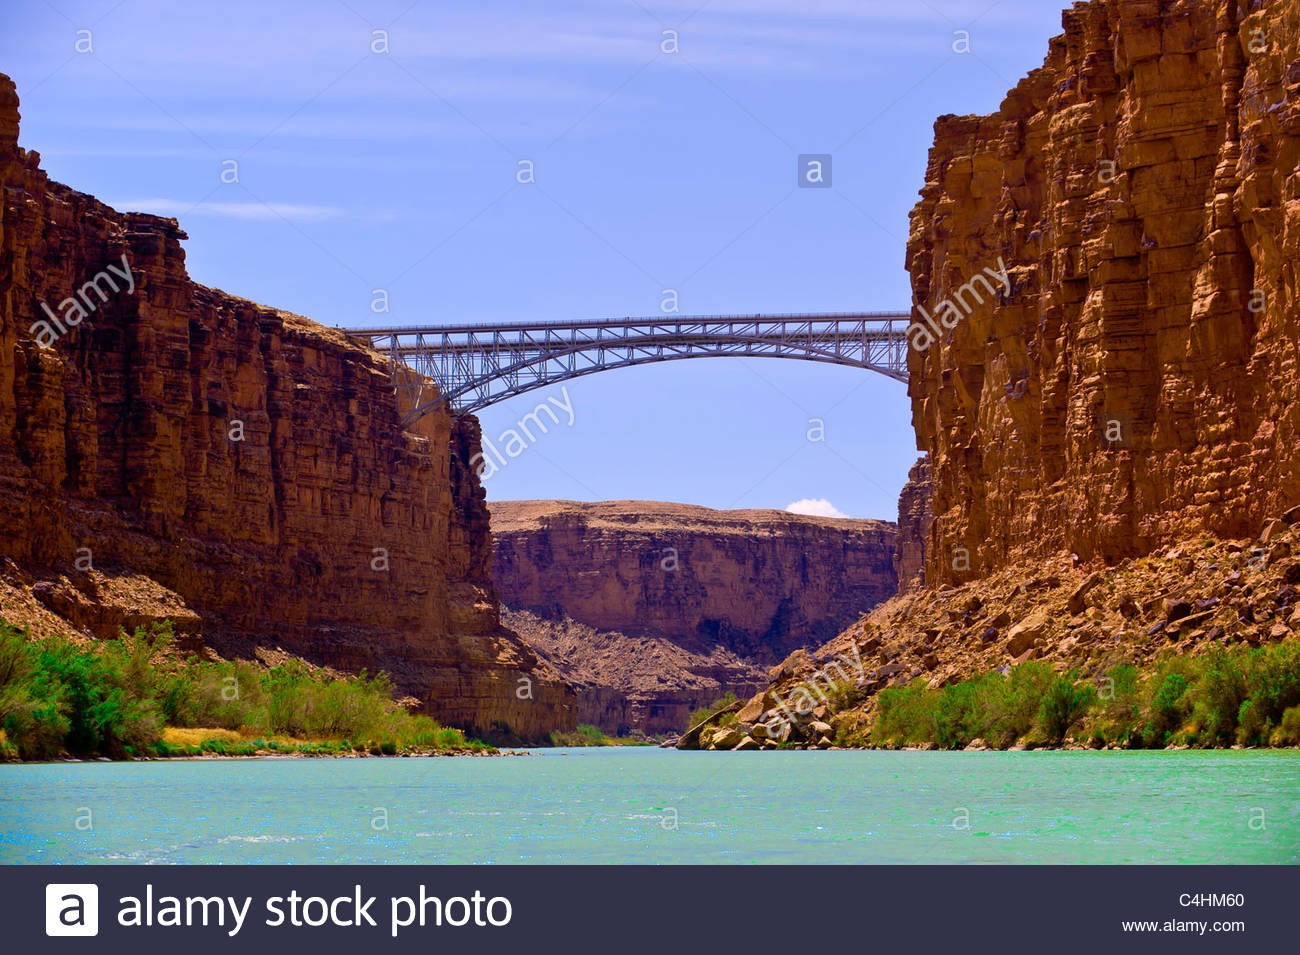 Navajo Bridge in Marble Canyon, Glen Canyon National Recreation Area, il Fiume Colorado, Arizona USA Immagini Stock